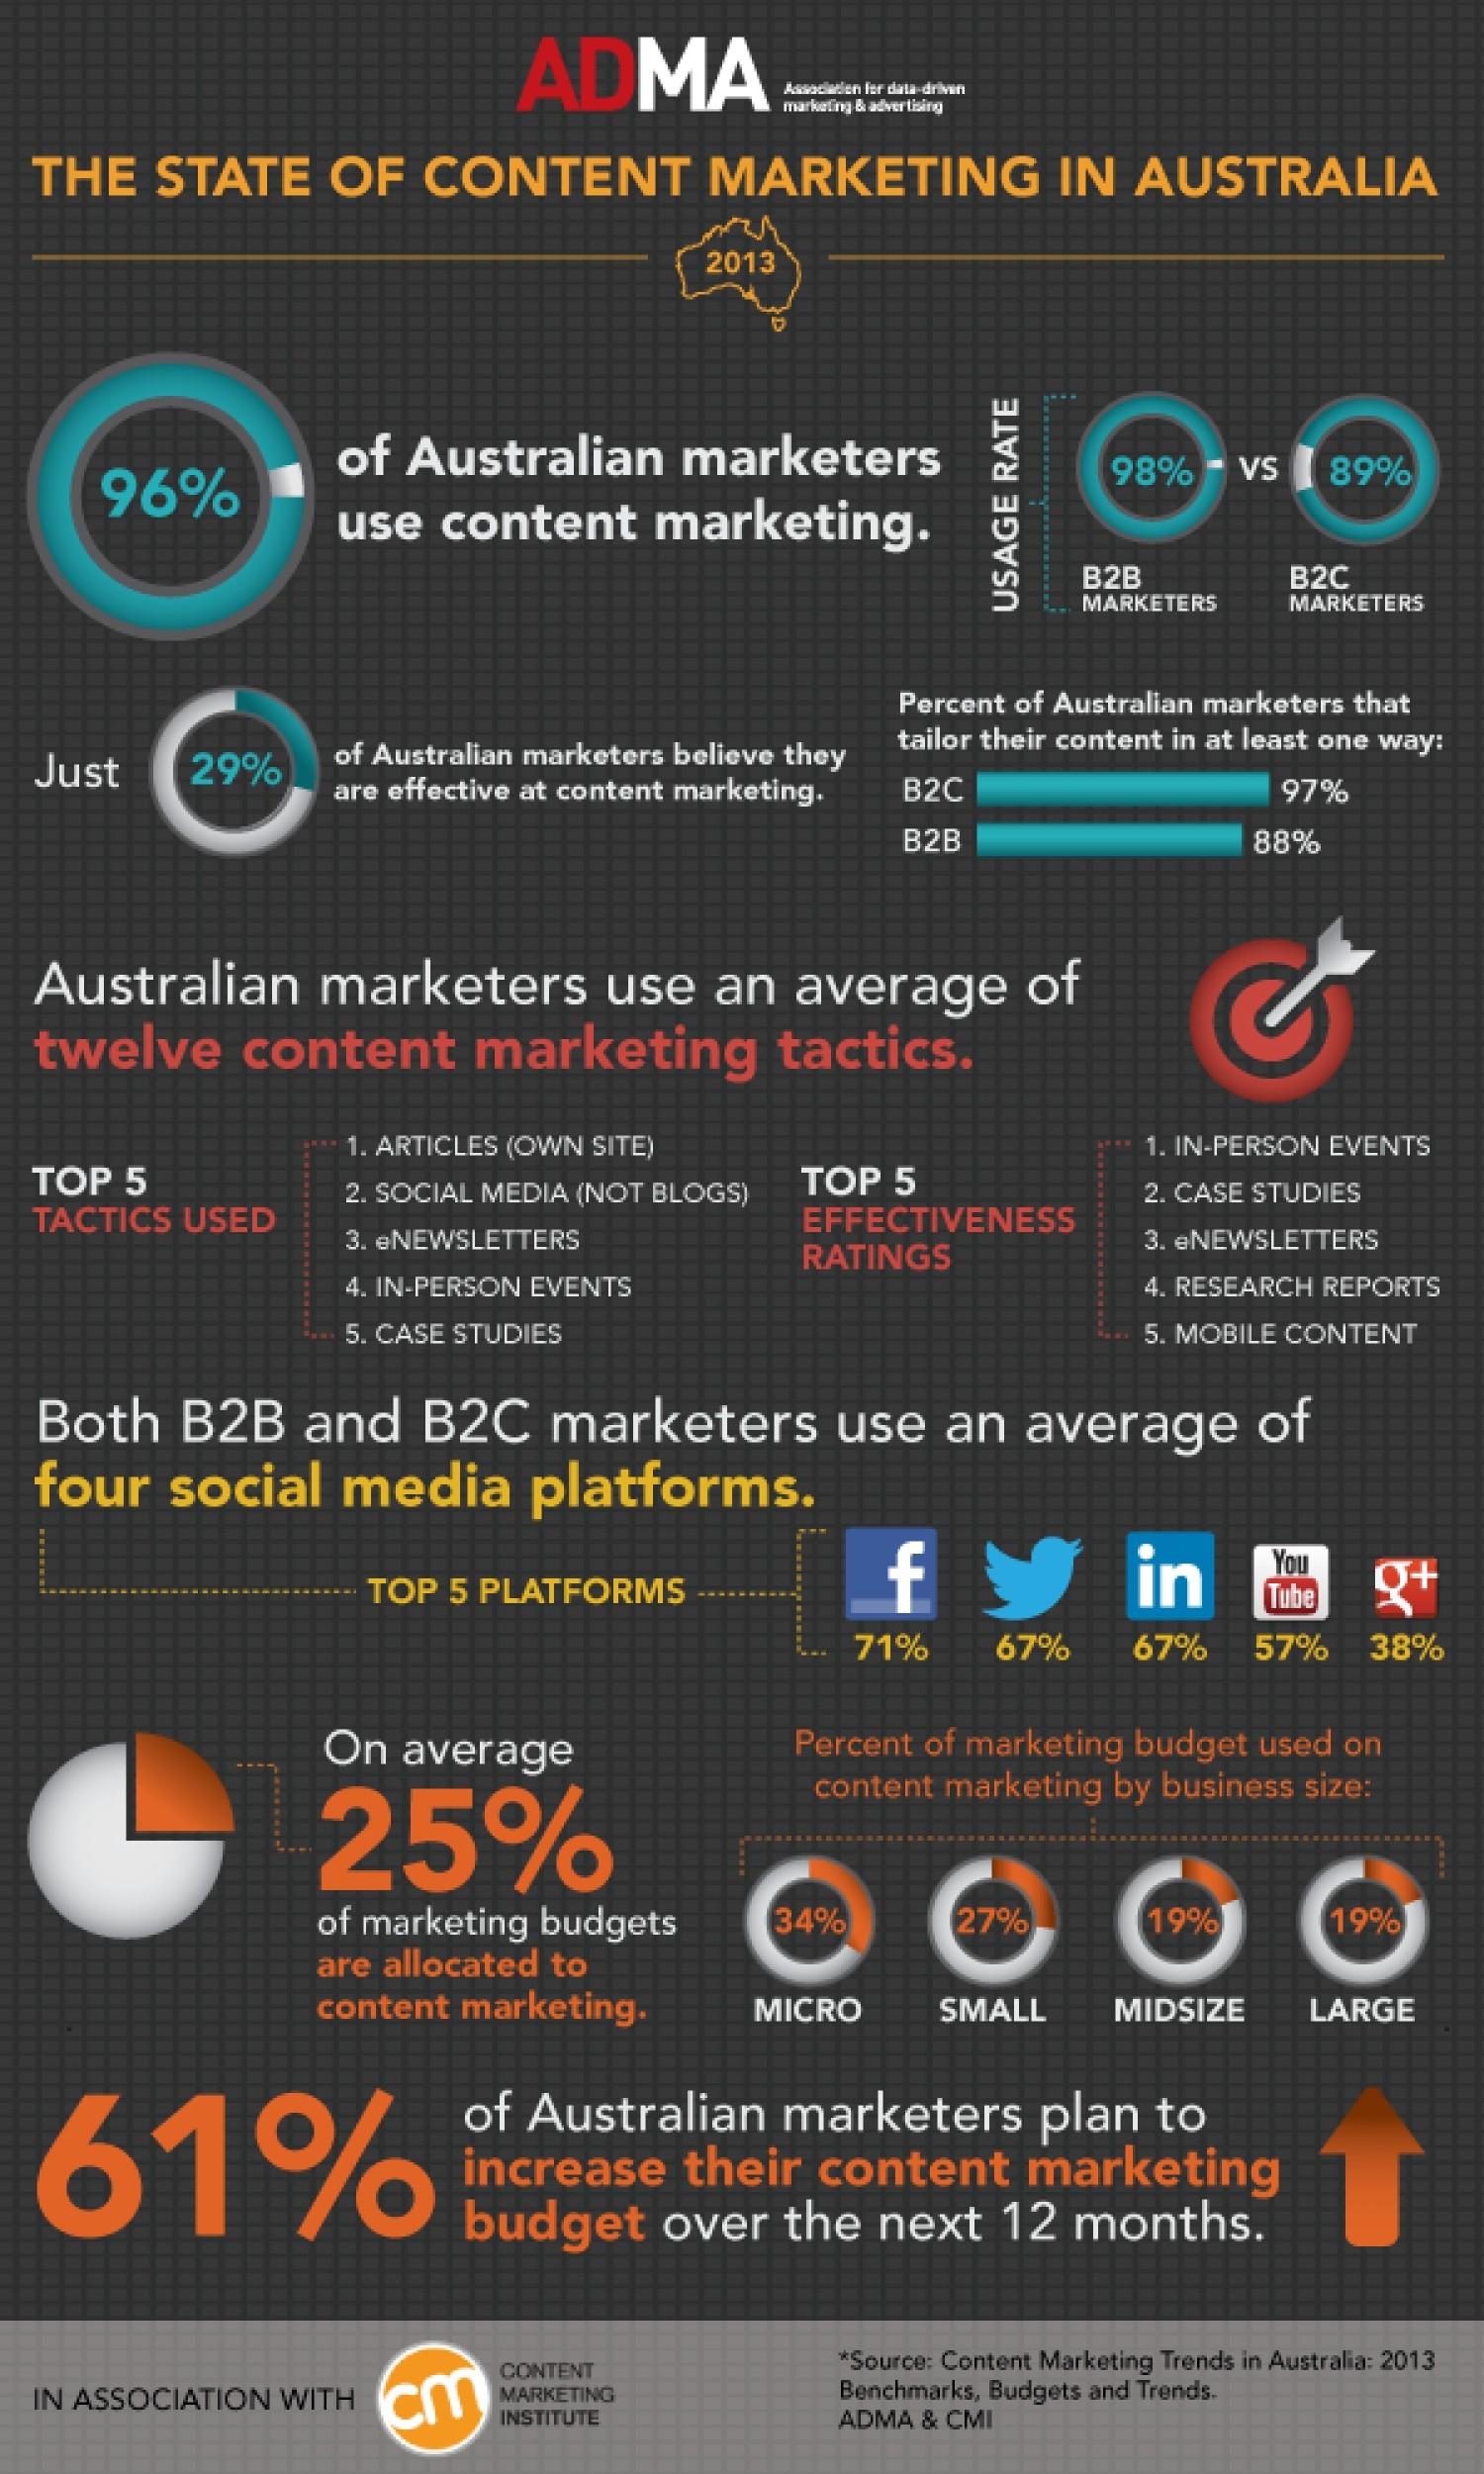 19. Content Marketing in Australia